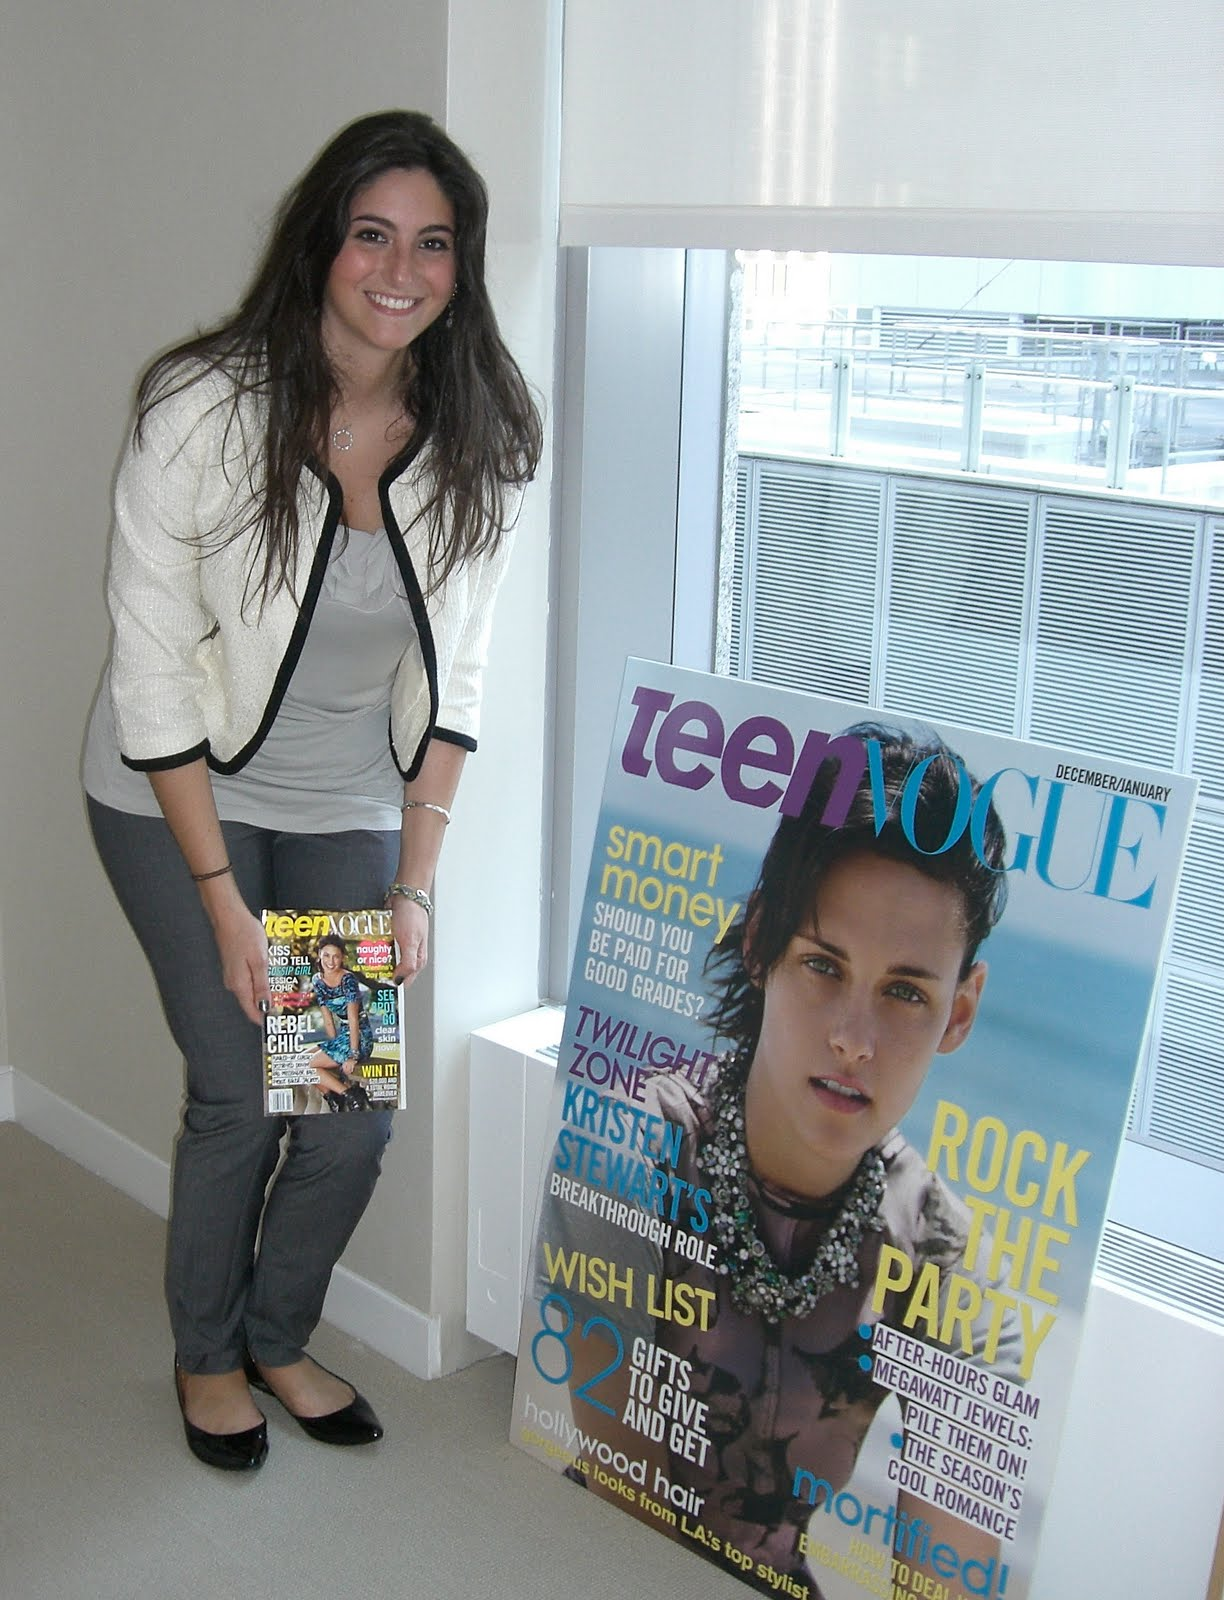 After my day exploring all the wonders Teen Vogue had to offer, ...